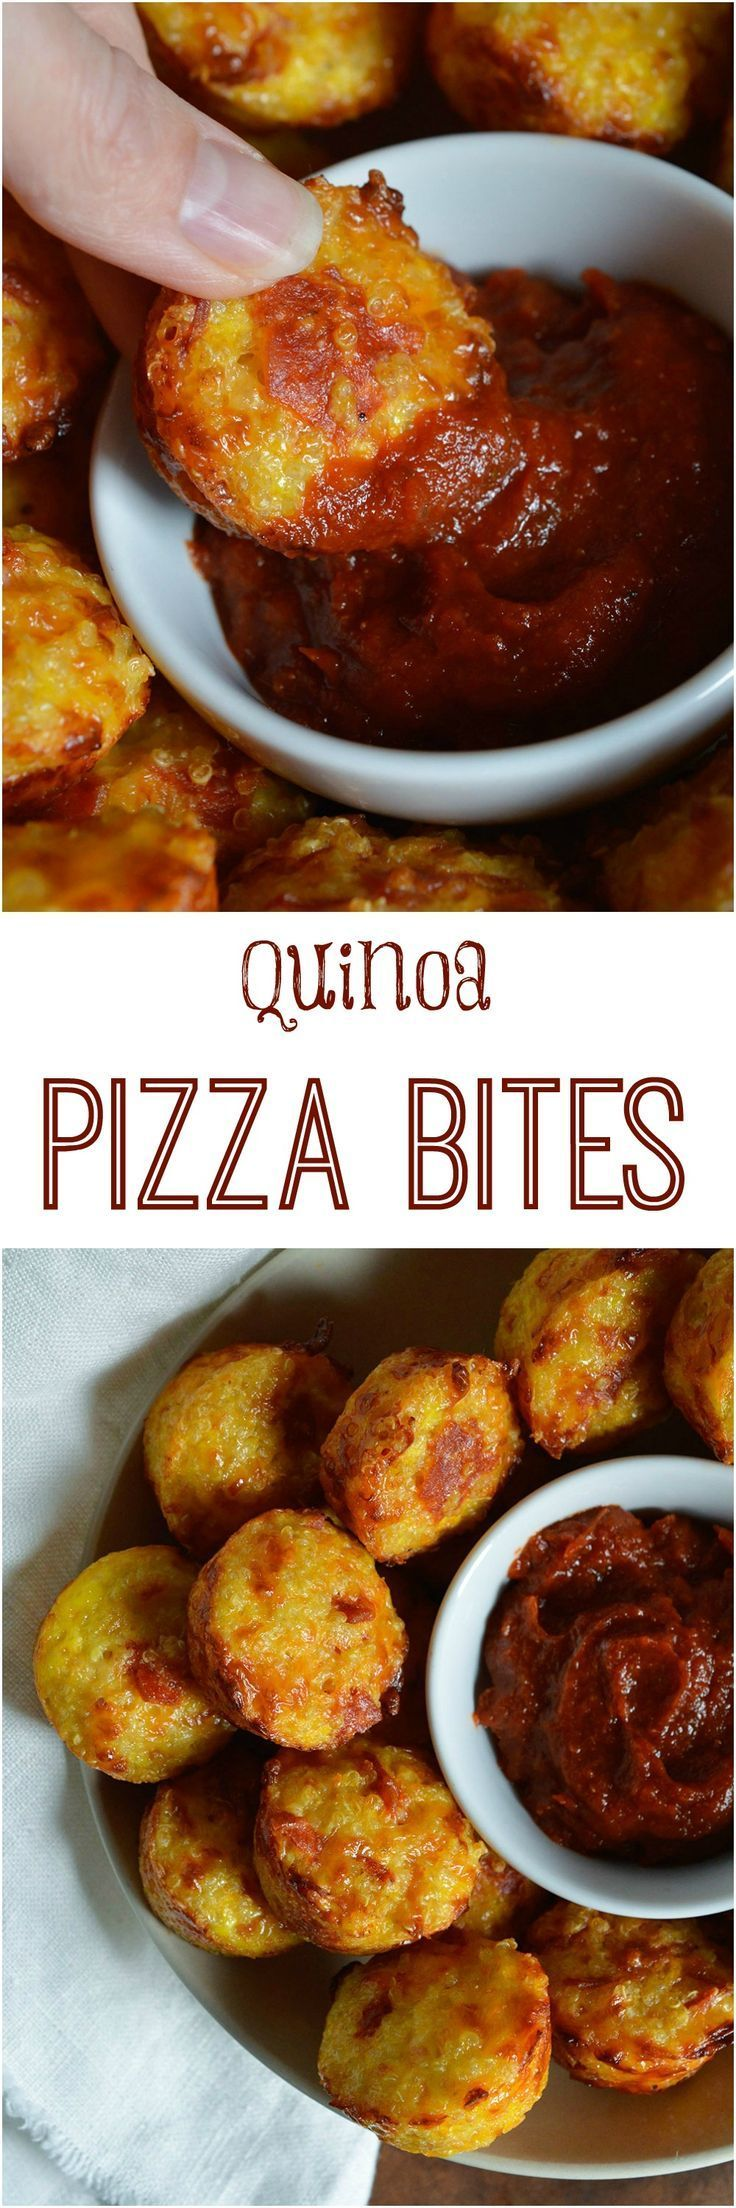 Gluten Free Quinoa Pizza Bites Recipe - This healthy pizza alternative has all the flavor of a cheesy pepperoni pizza without the guilt. This appetizer is best served with pizza sauce dip.